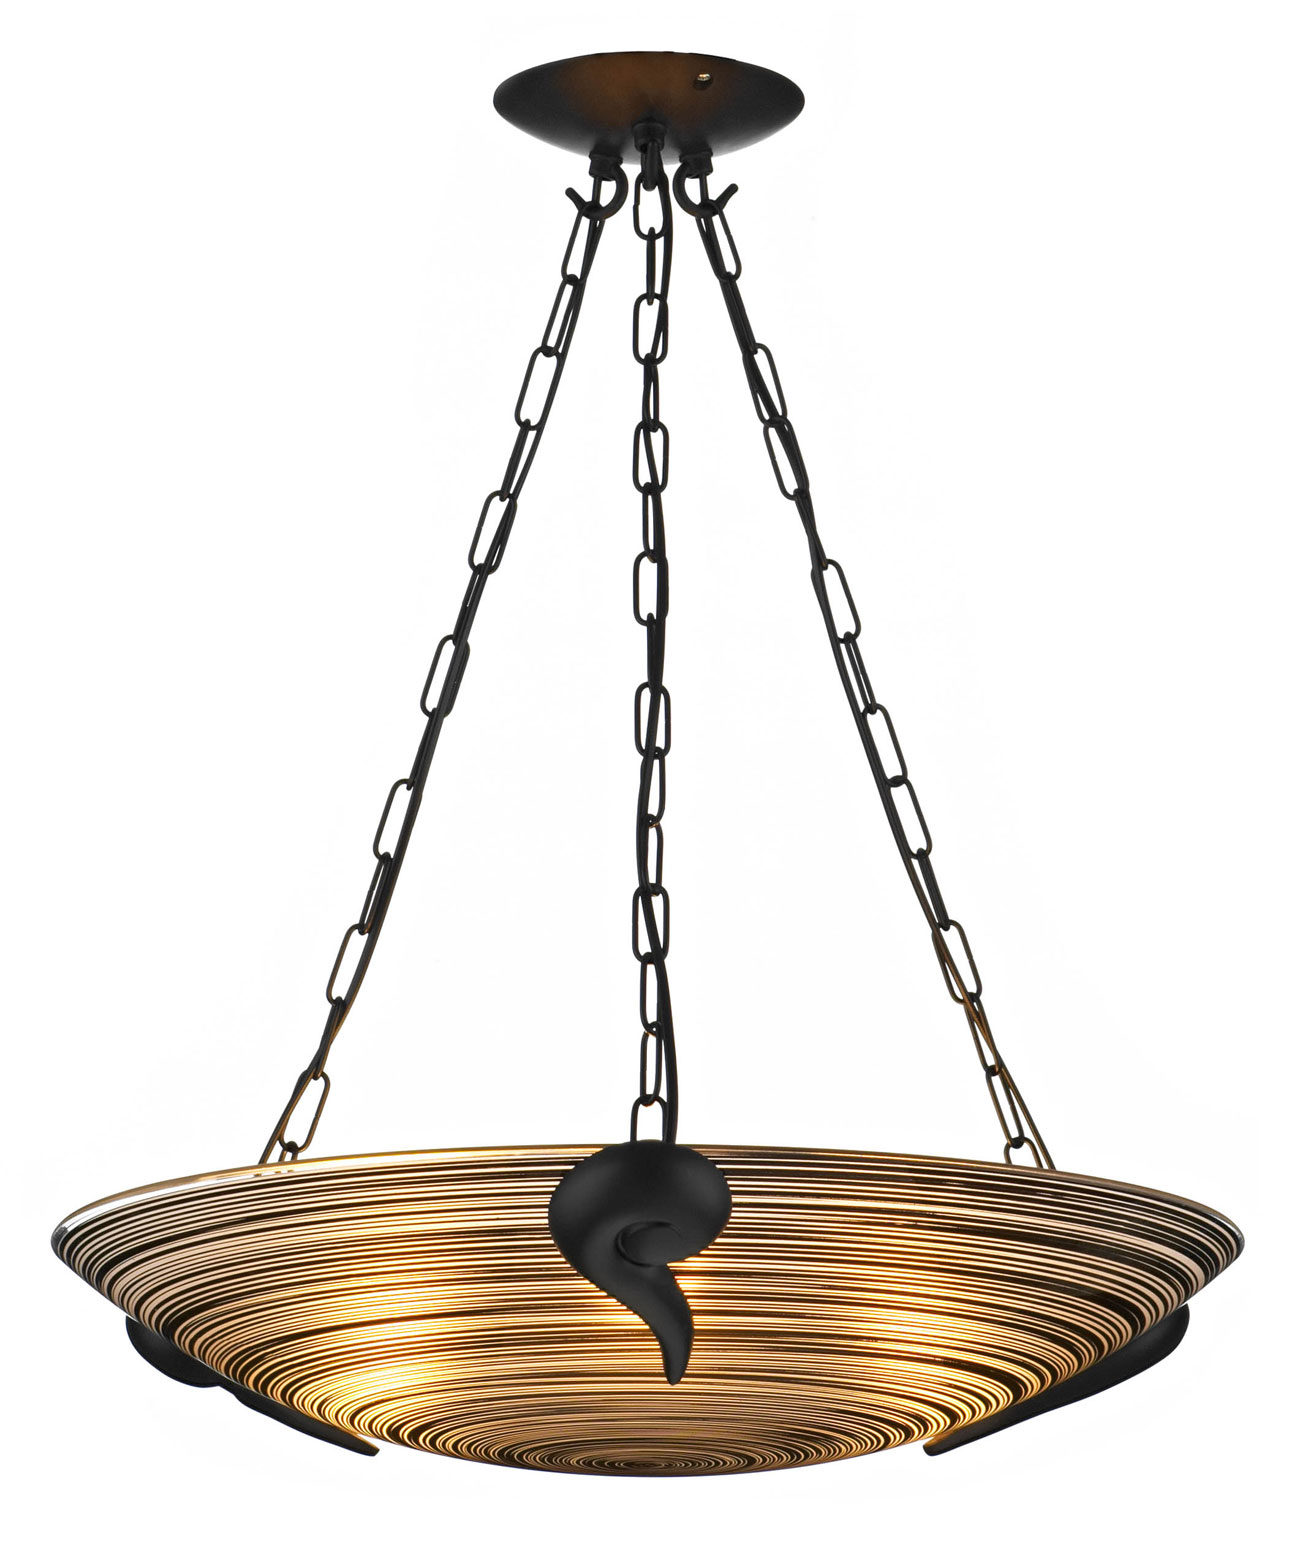 Italian Pendant Lighting Improve Your Home With Amazing Italian Ceiling Lights